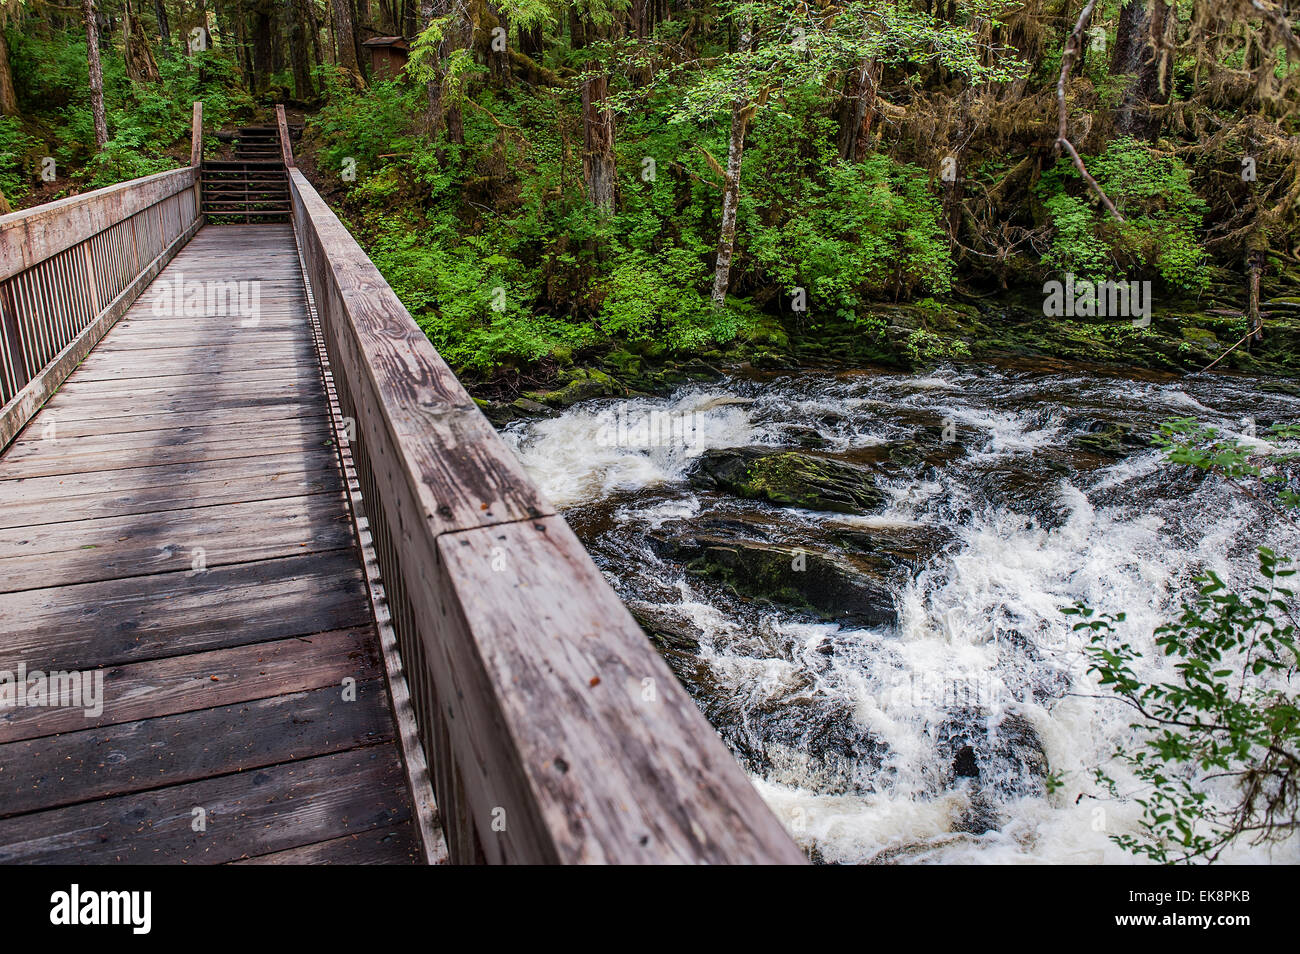 Wooden footbridge over a rushing stream in the temperate rainforest of Tongass National Forest, Ketchikan, Alaska, - Stock Image